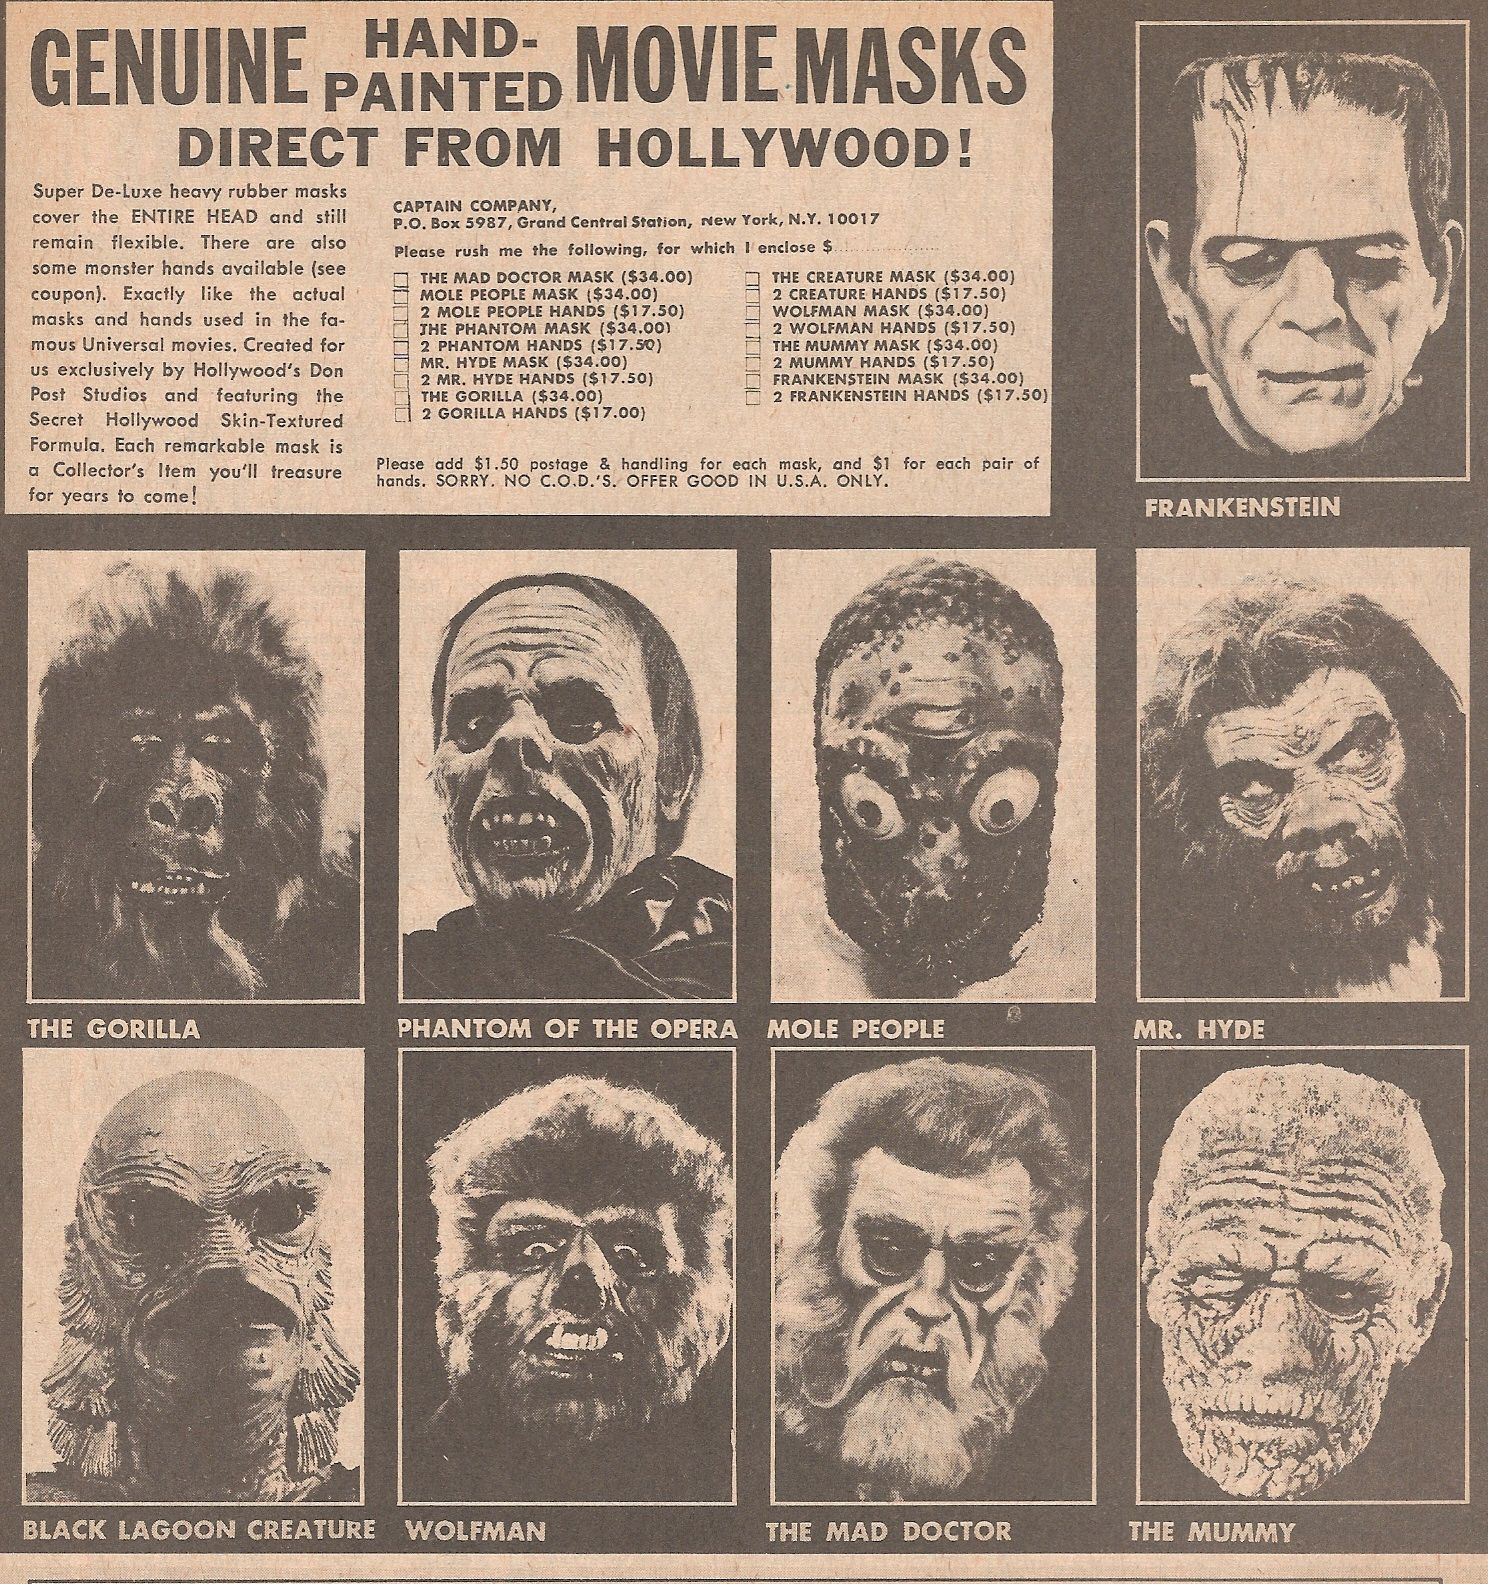 monster masks 1960s early 70s | Monster toys, games & costumes ...